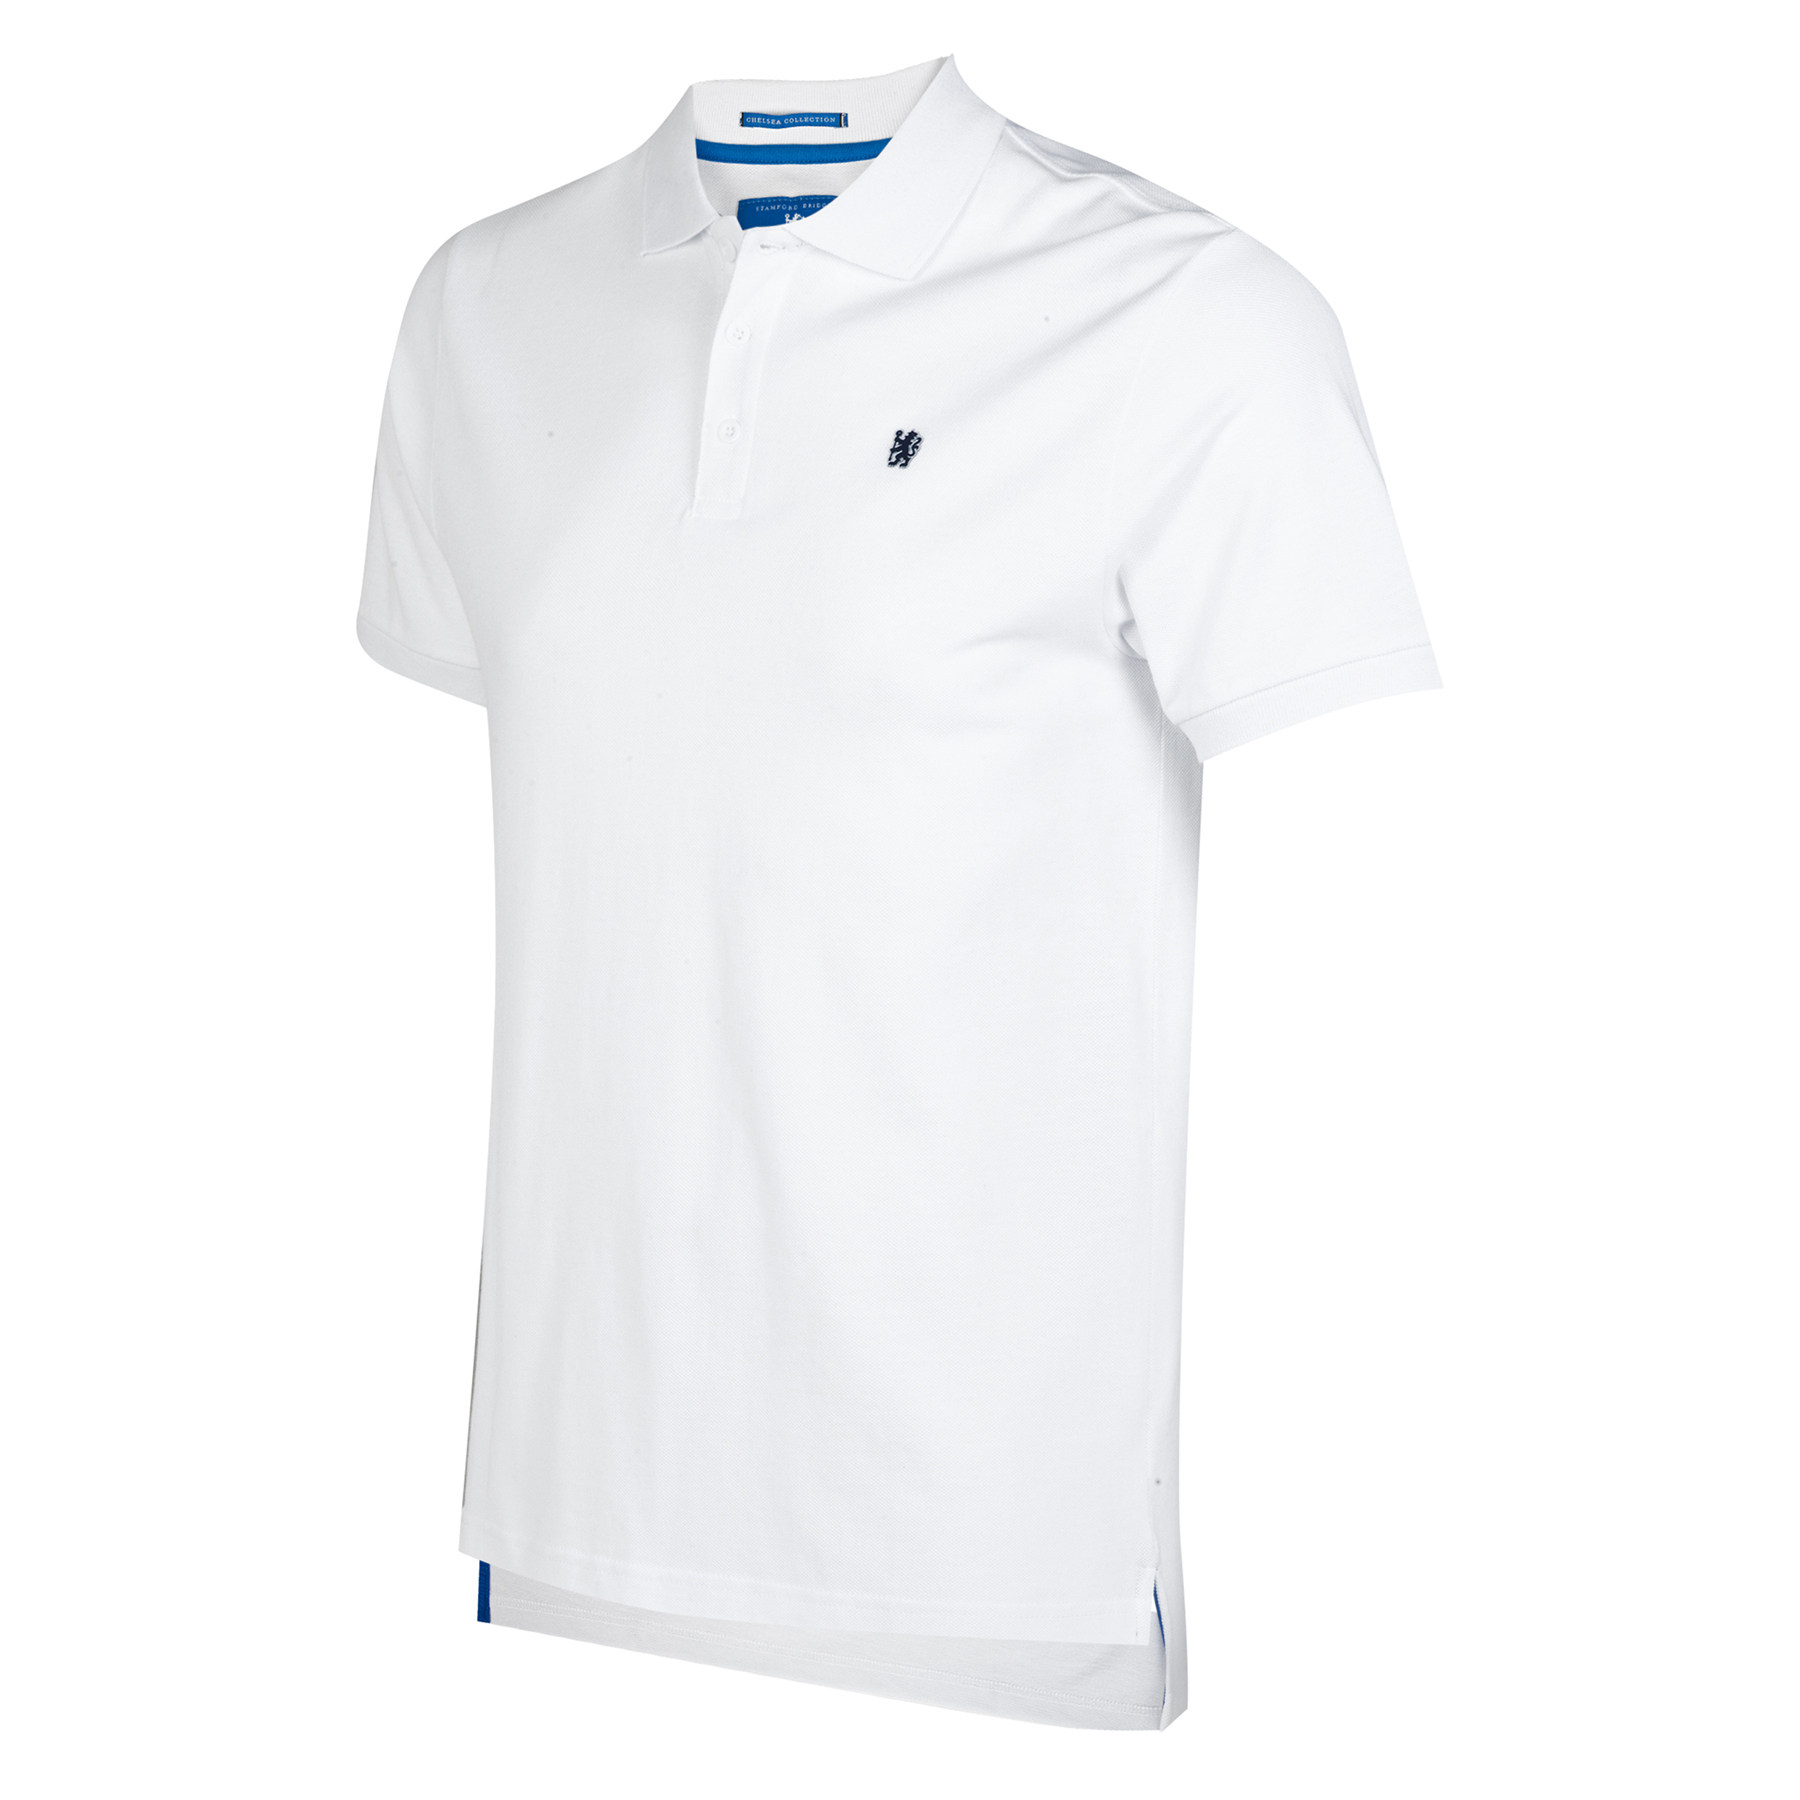 Chelsea Lion Polo Shirt - White - Mens   Woven lion badge. Woven back neck label. 3 x branded buttons. 100% Cotton Pique. Machine washable.